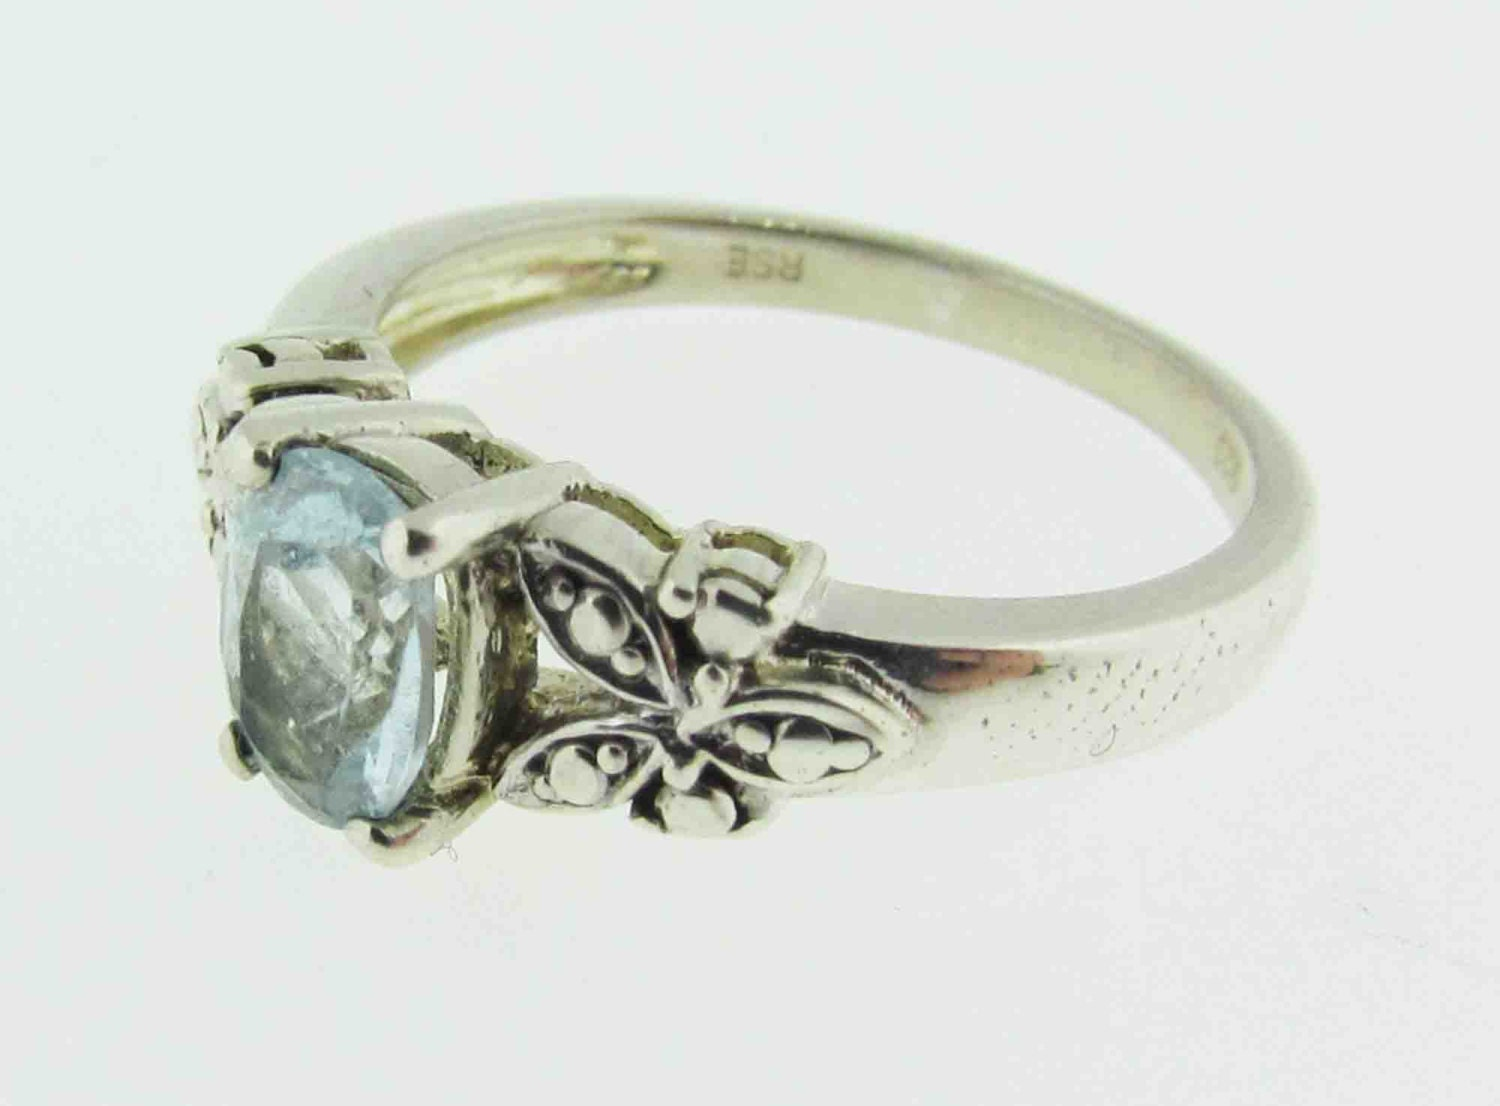 sterling silver ring with blue topaz stone. Black Bedroom Furniture Sets. Home Design Ideas